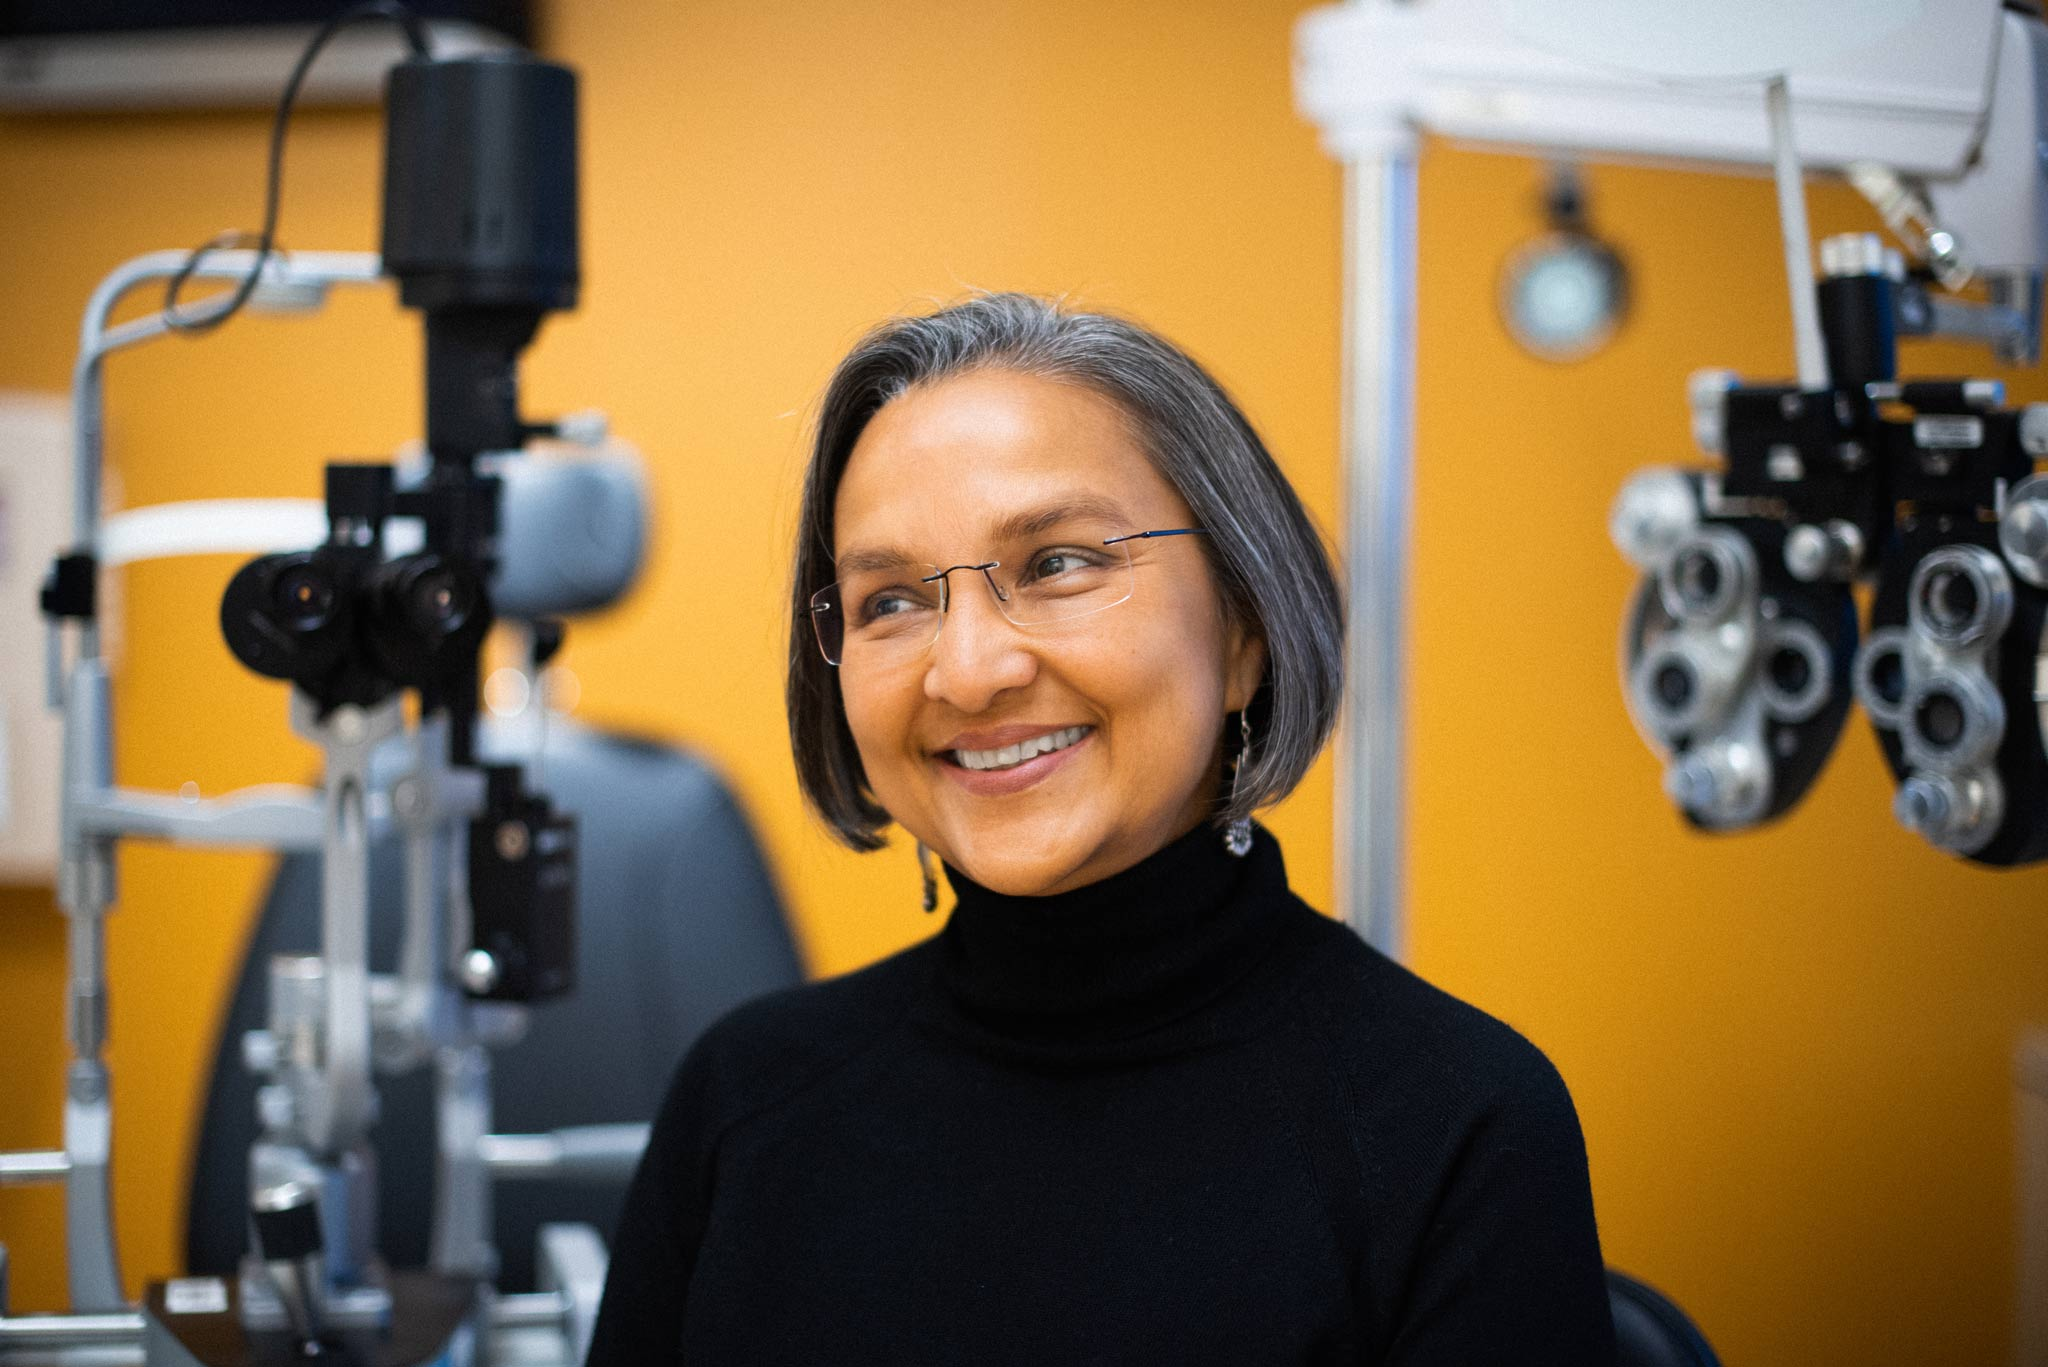 Dr. Capoor smiles in one of her vision examination rooms.